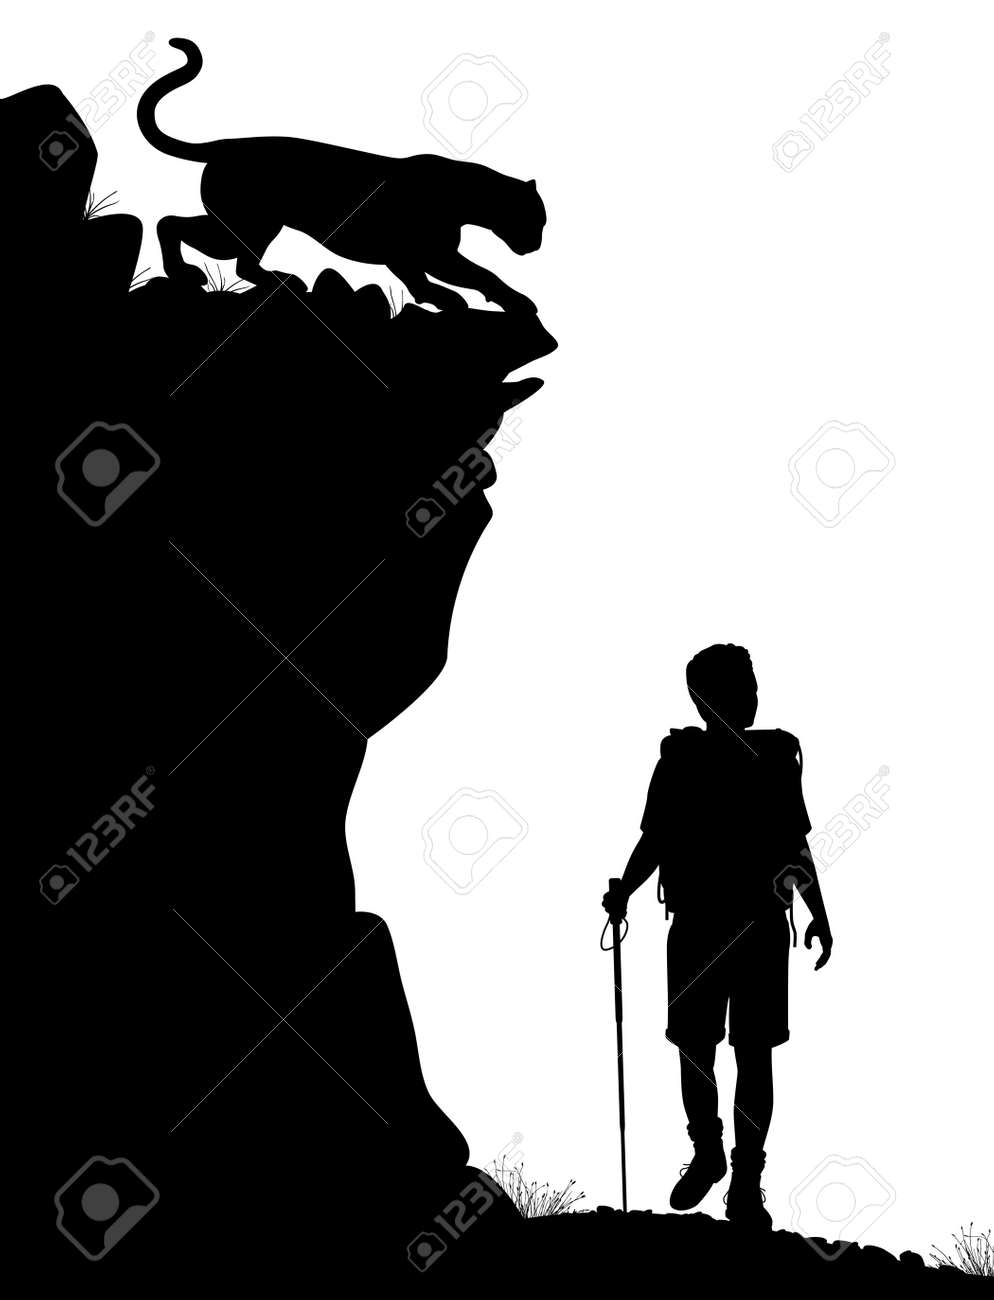 Editable Silhouette Of A Lone Hiker Being Stalked By A Cougar Stock Vector 19477411